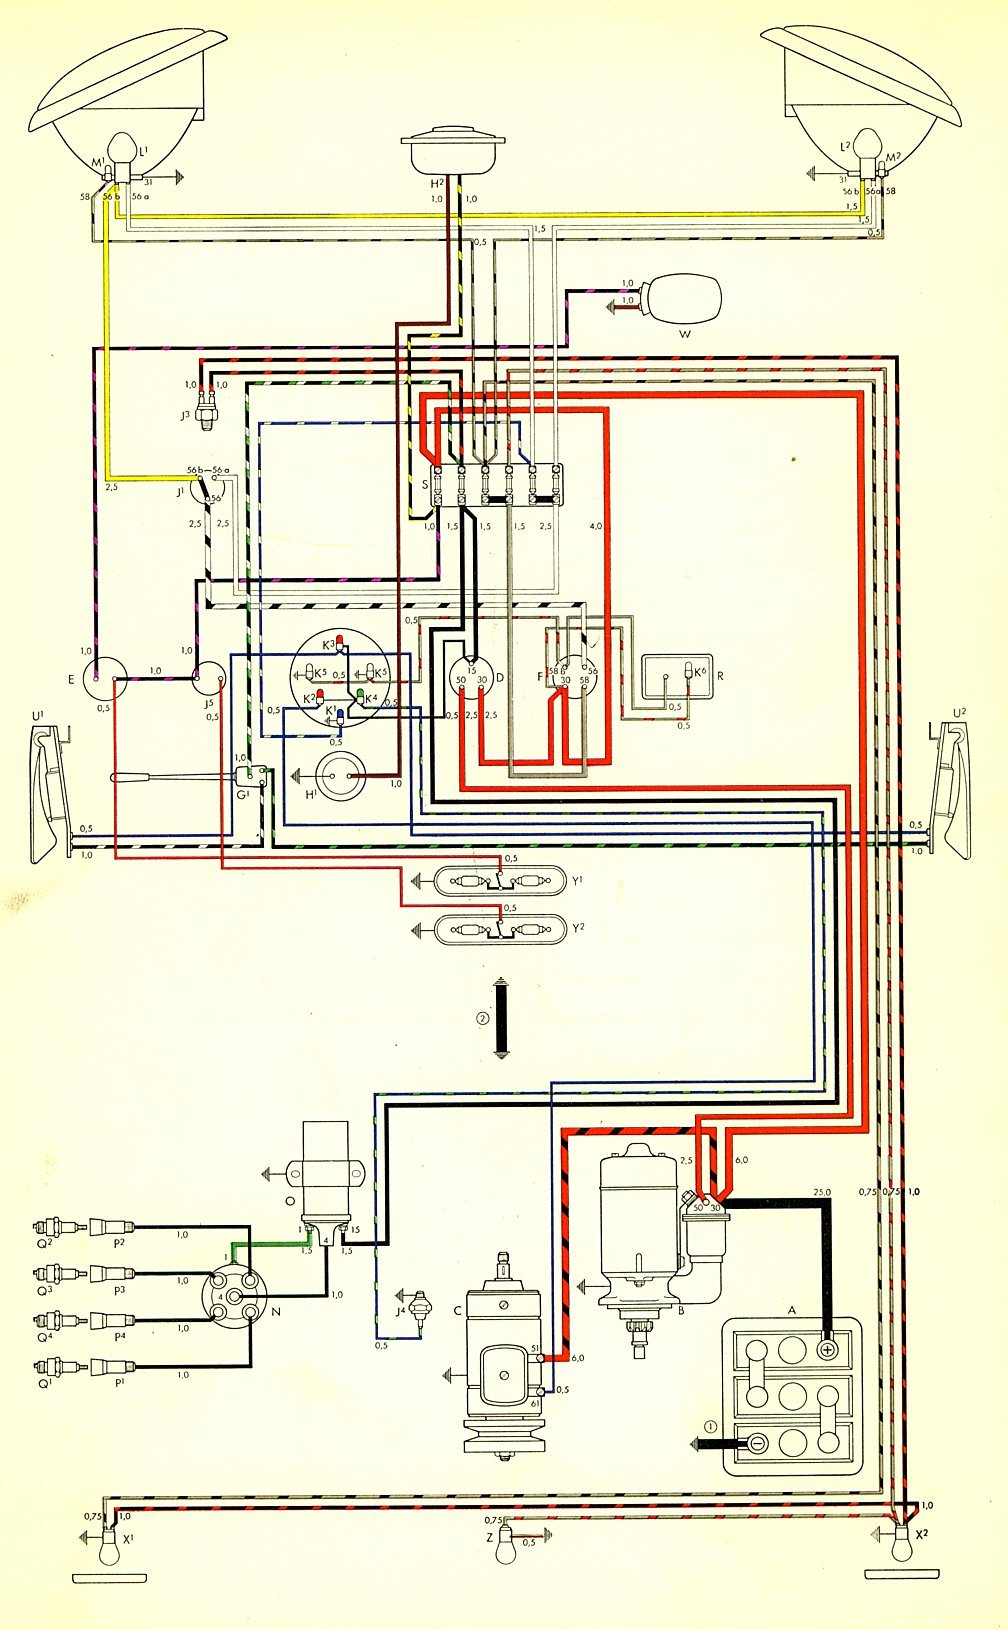 Type 2 Wiring Diagrams 1966 Mustang Electrical Diagram